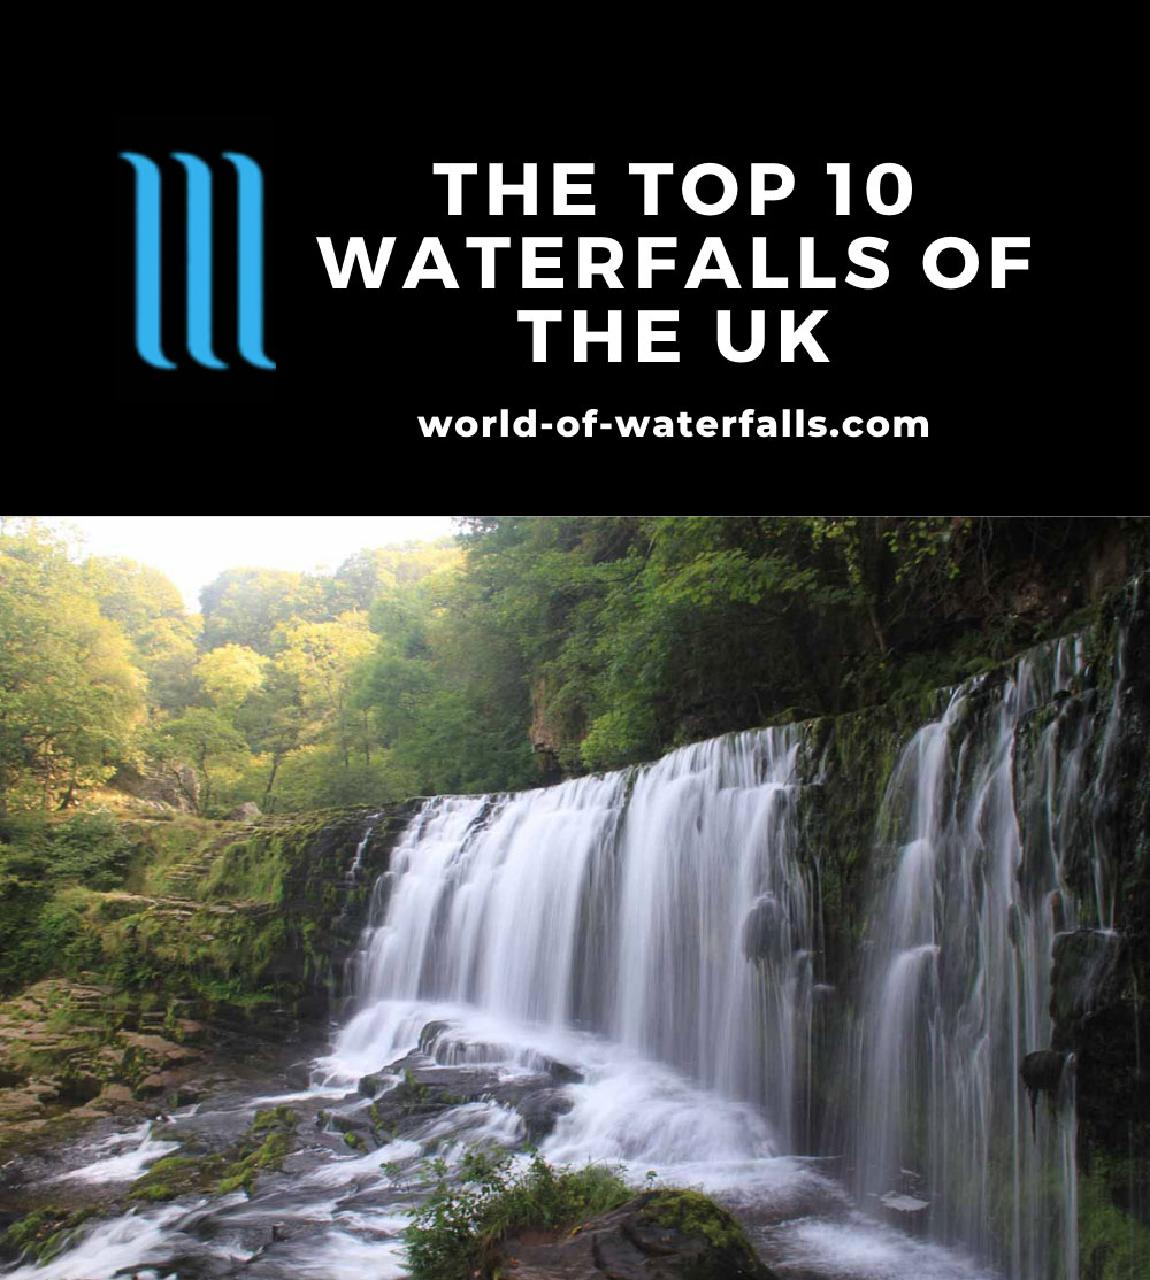 The Top 10 Waterfalls of the UK